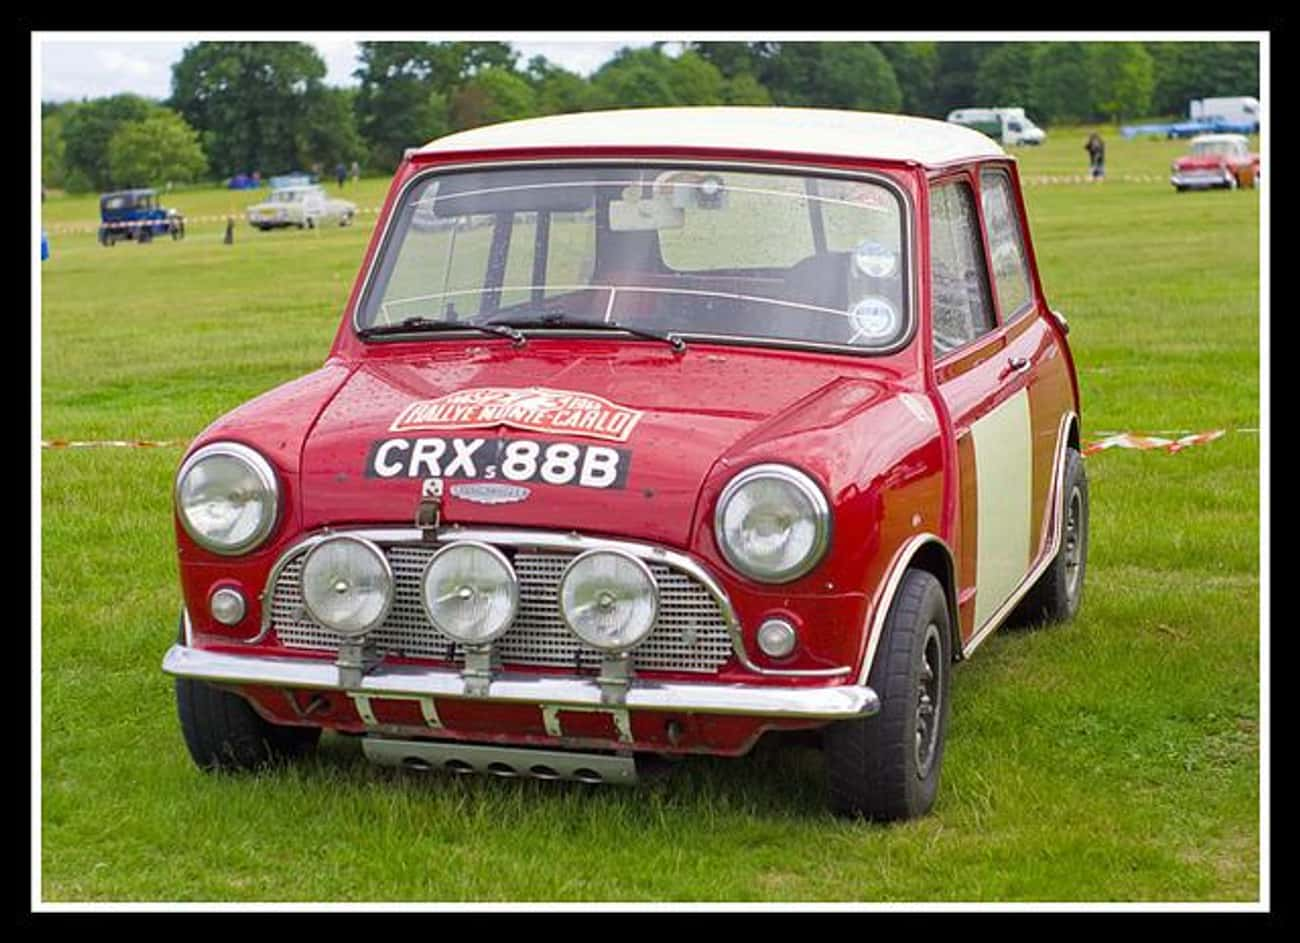 MINI Cooper is listed (or ranked) 1 on the list Full List of British Motor Corporation Models